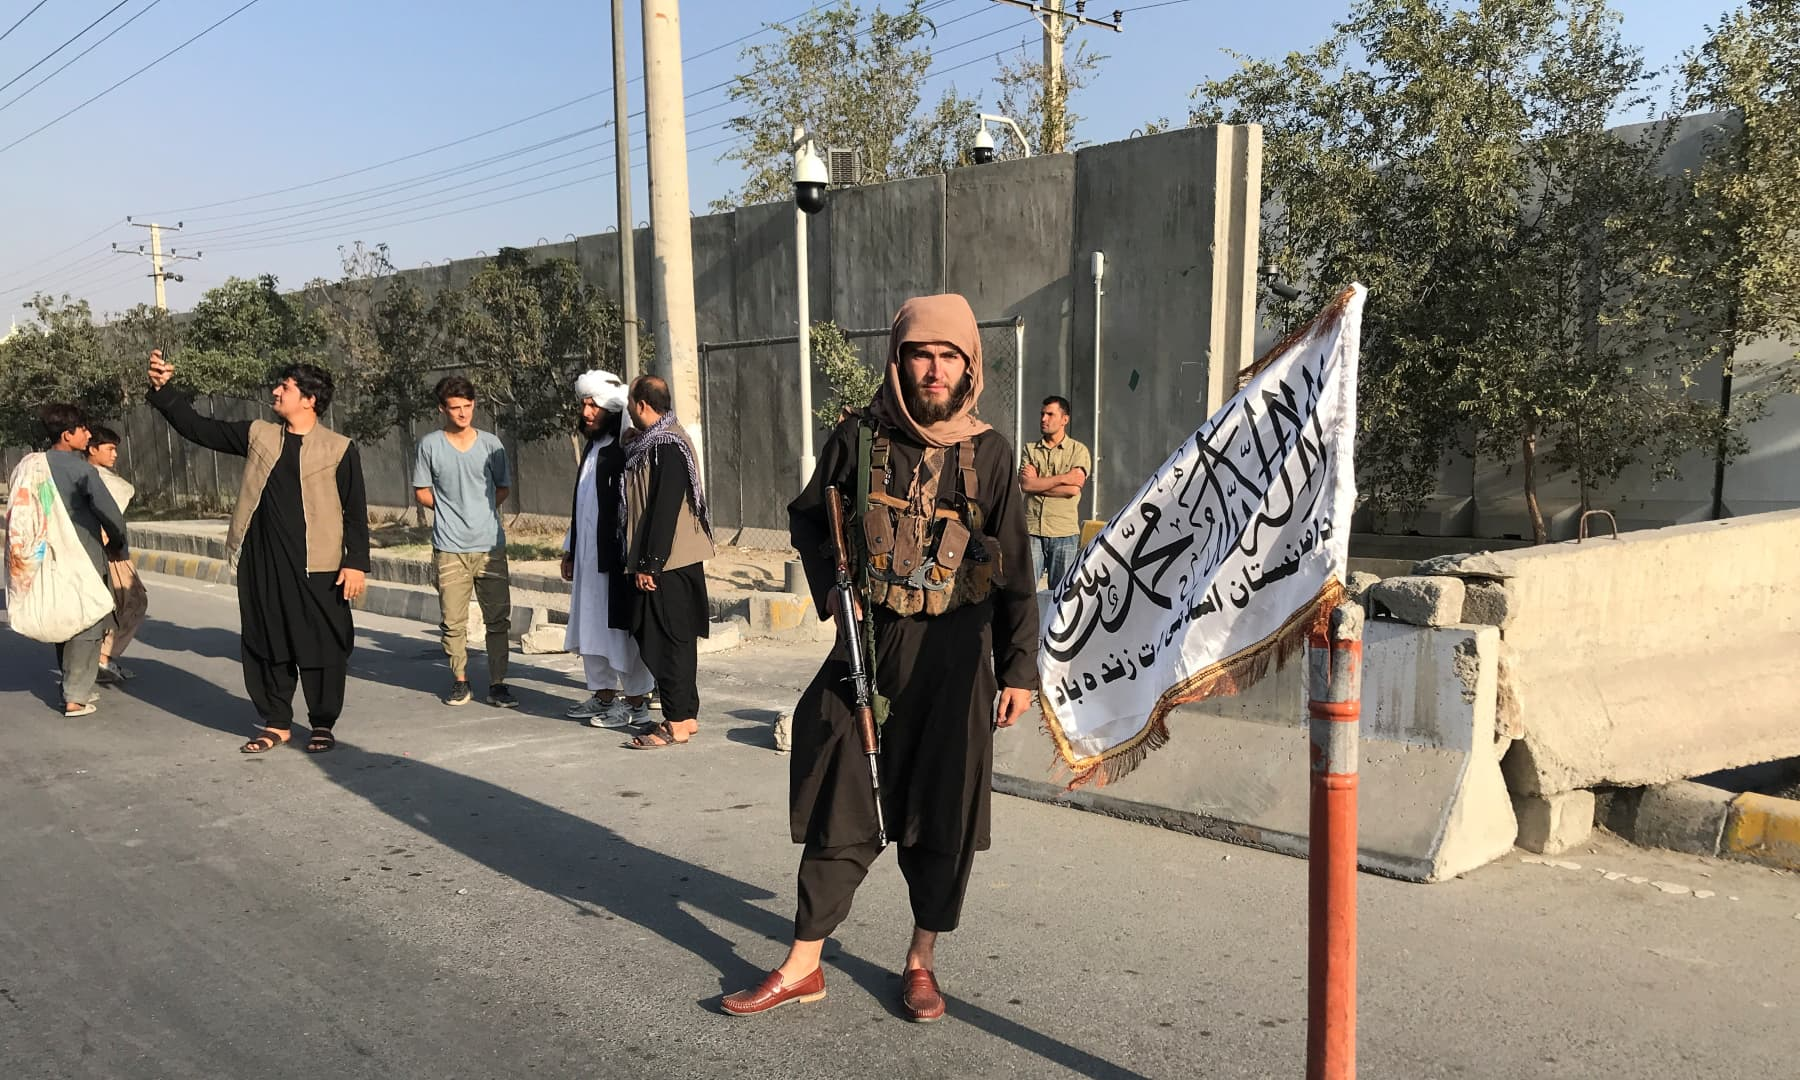 A member of Taliban stands outside the Interior Ministry in Kabul, Afghanistan on August 16, 2021. — Reuters